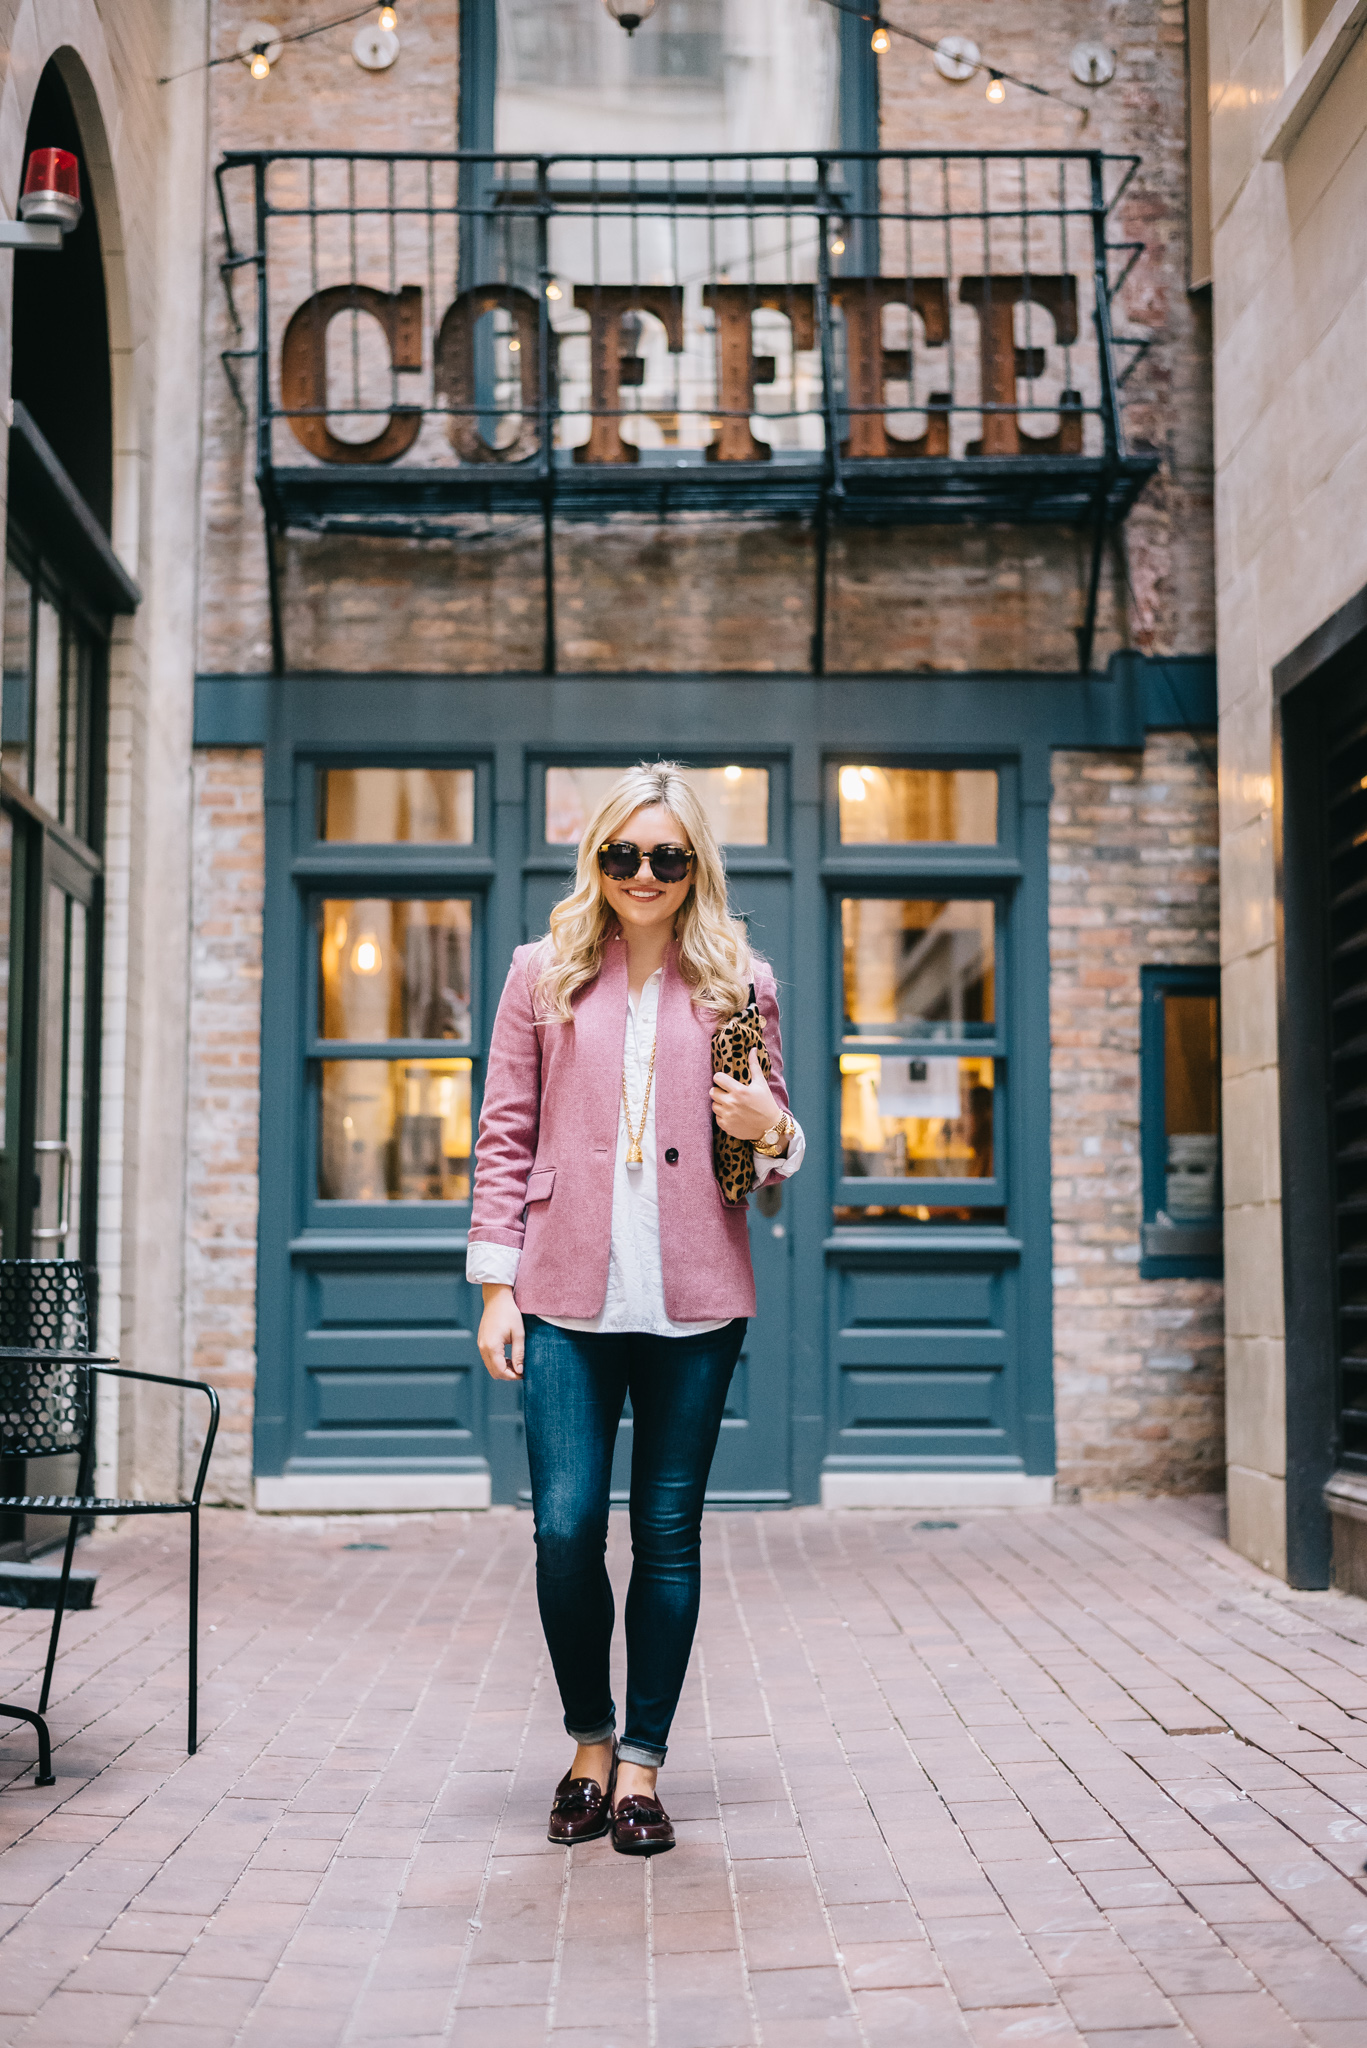 coffee-shop-in-an-alley-chicago-downtown